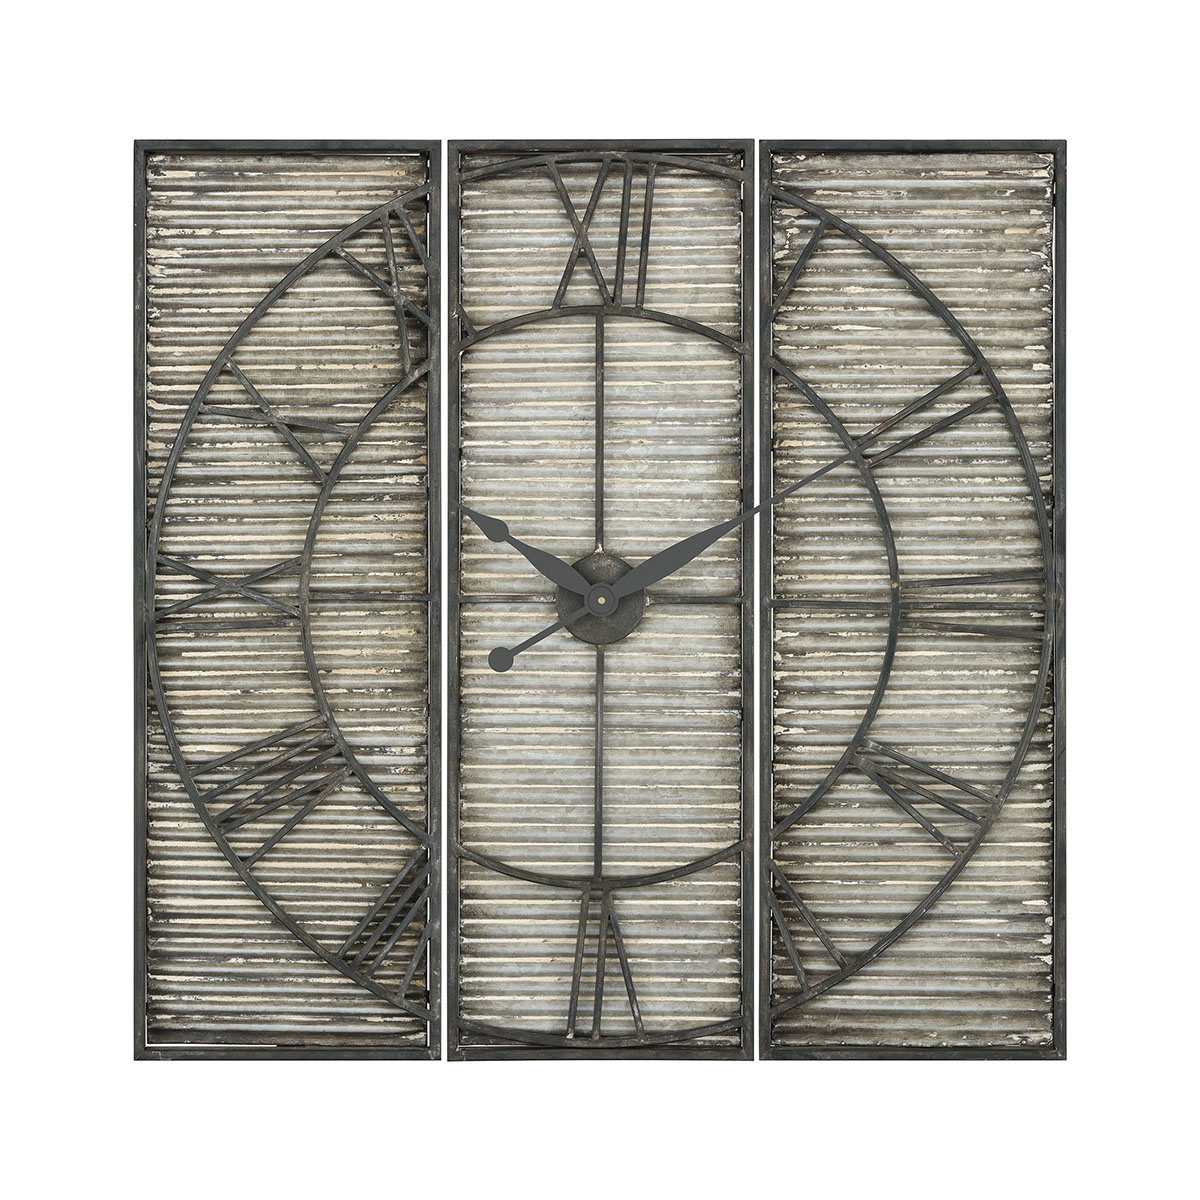 Tammany Square Triptych Wall Clock | Elk Home